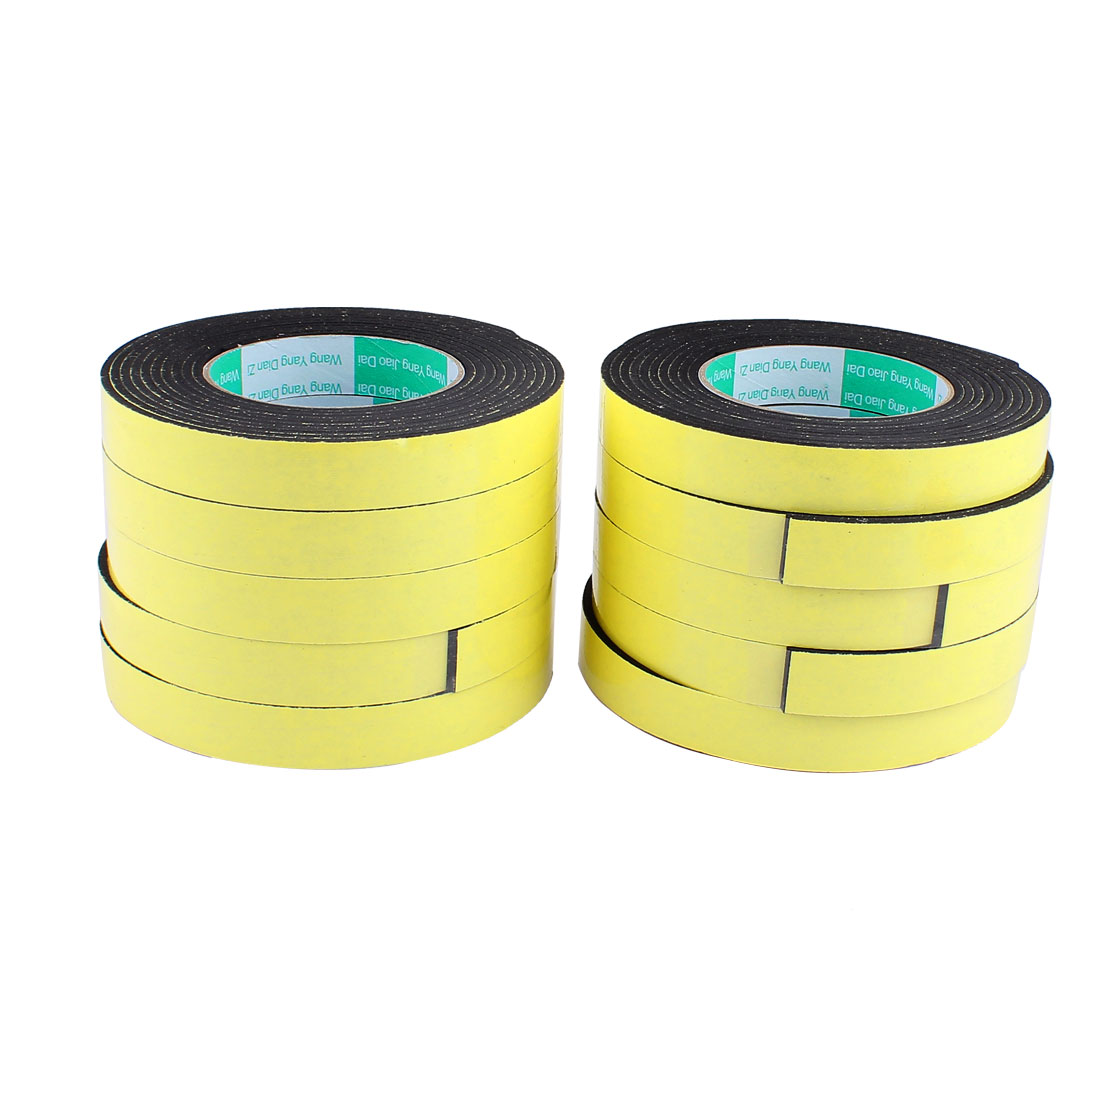 10 Pcs 2CM Width 4M Length 3MM Thick Single Sided Sealing Shockproof Sponge Tape